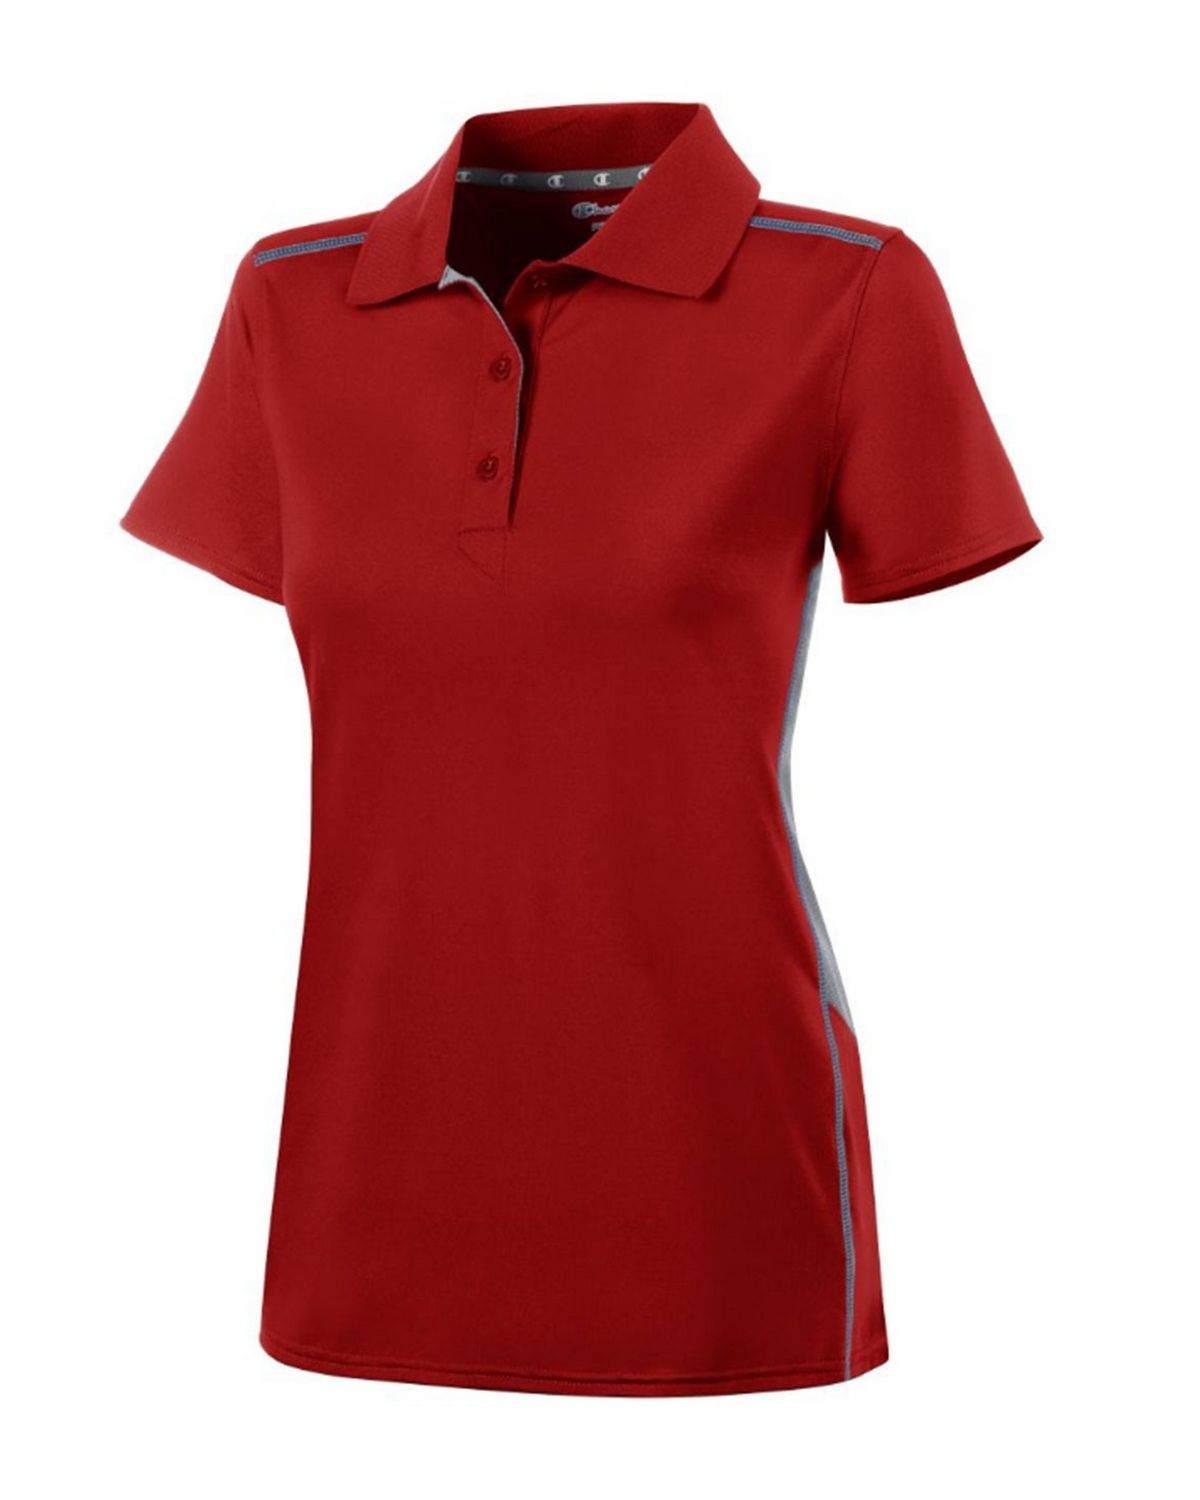 Champion H909 Womens Polo Shirt - Scarlet/Stone Gray - S H909